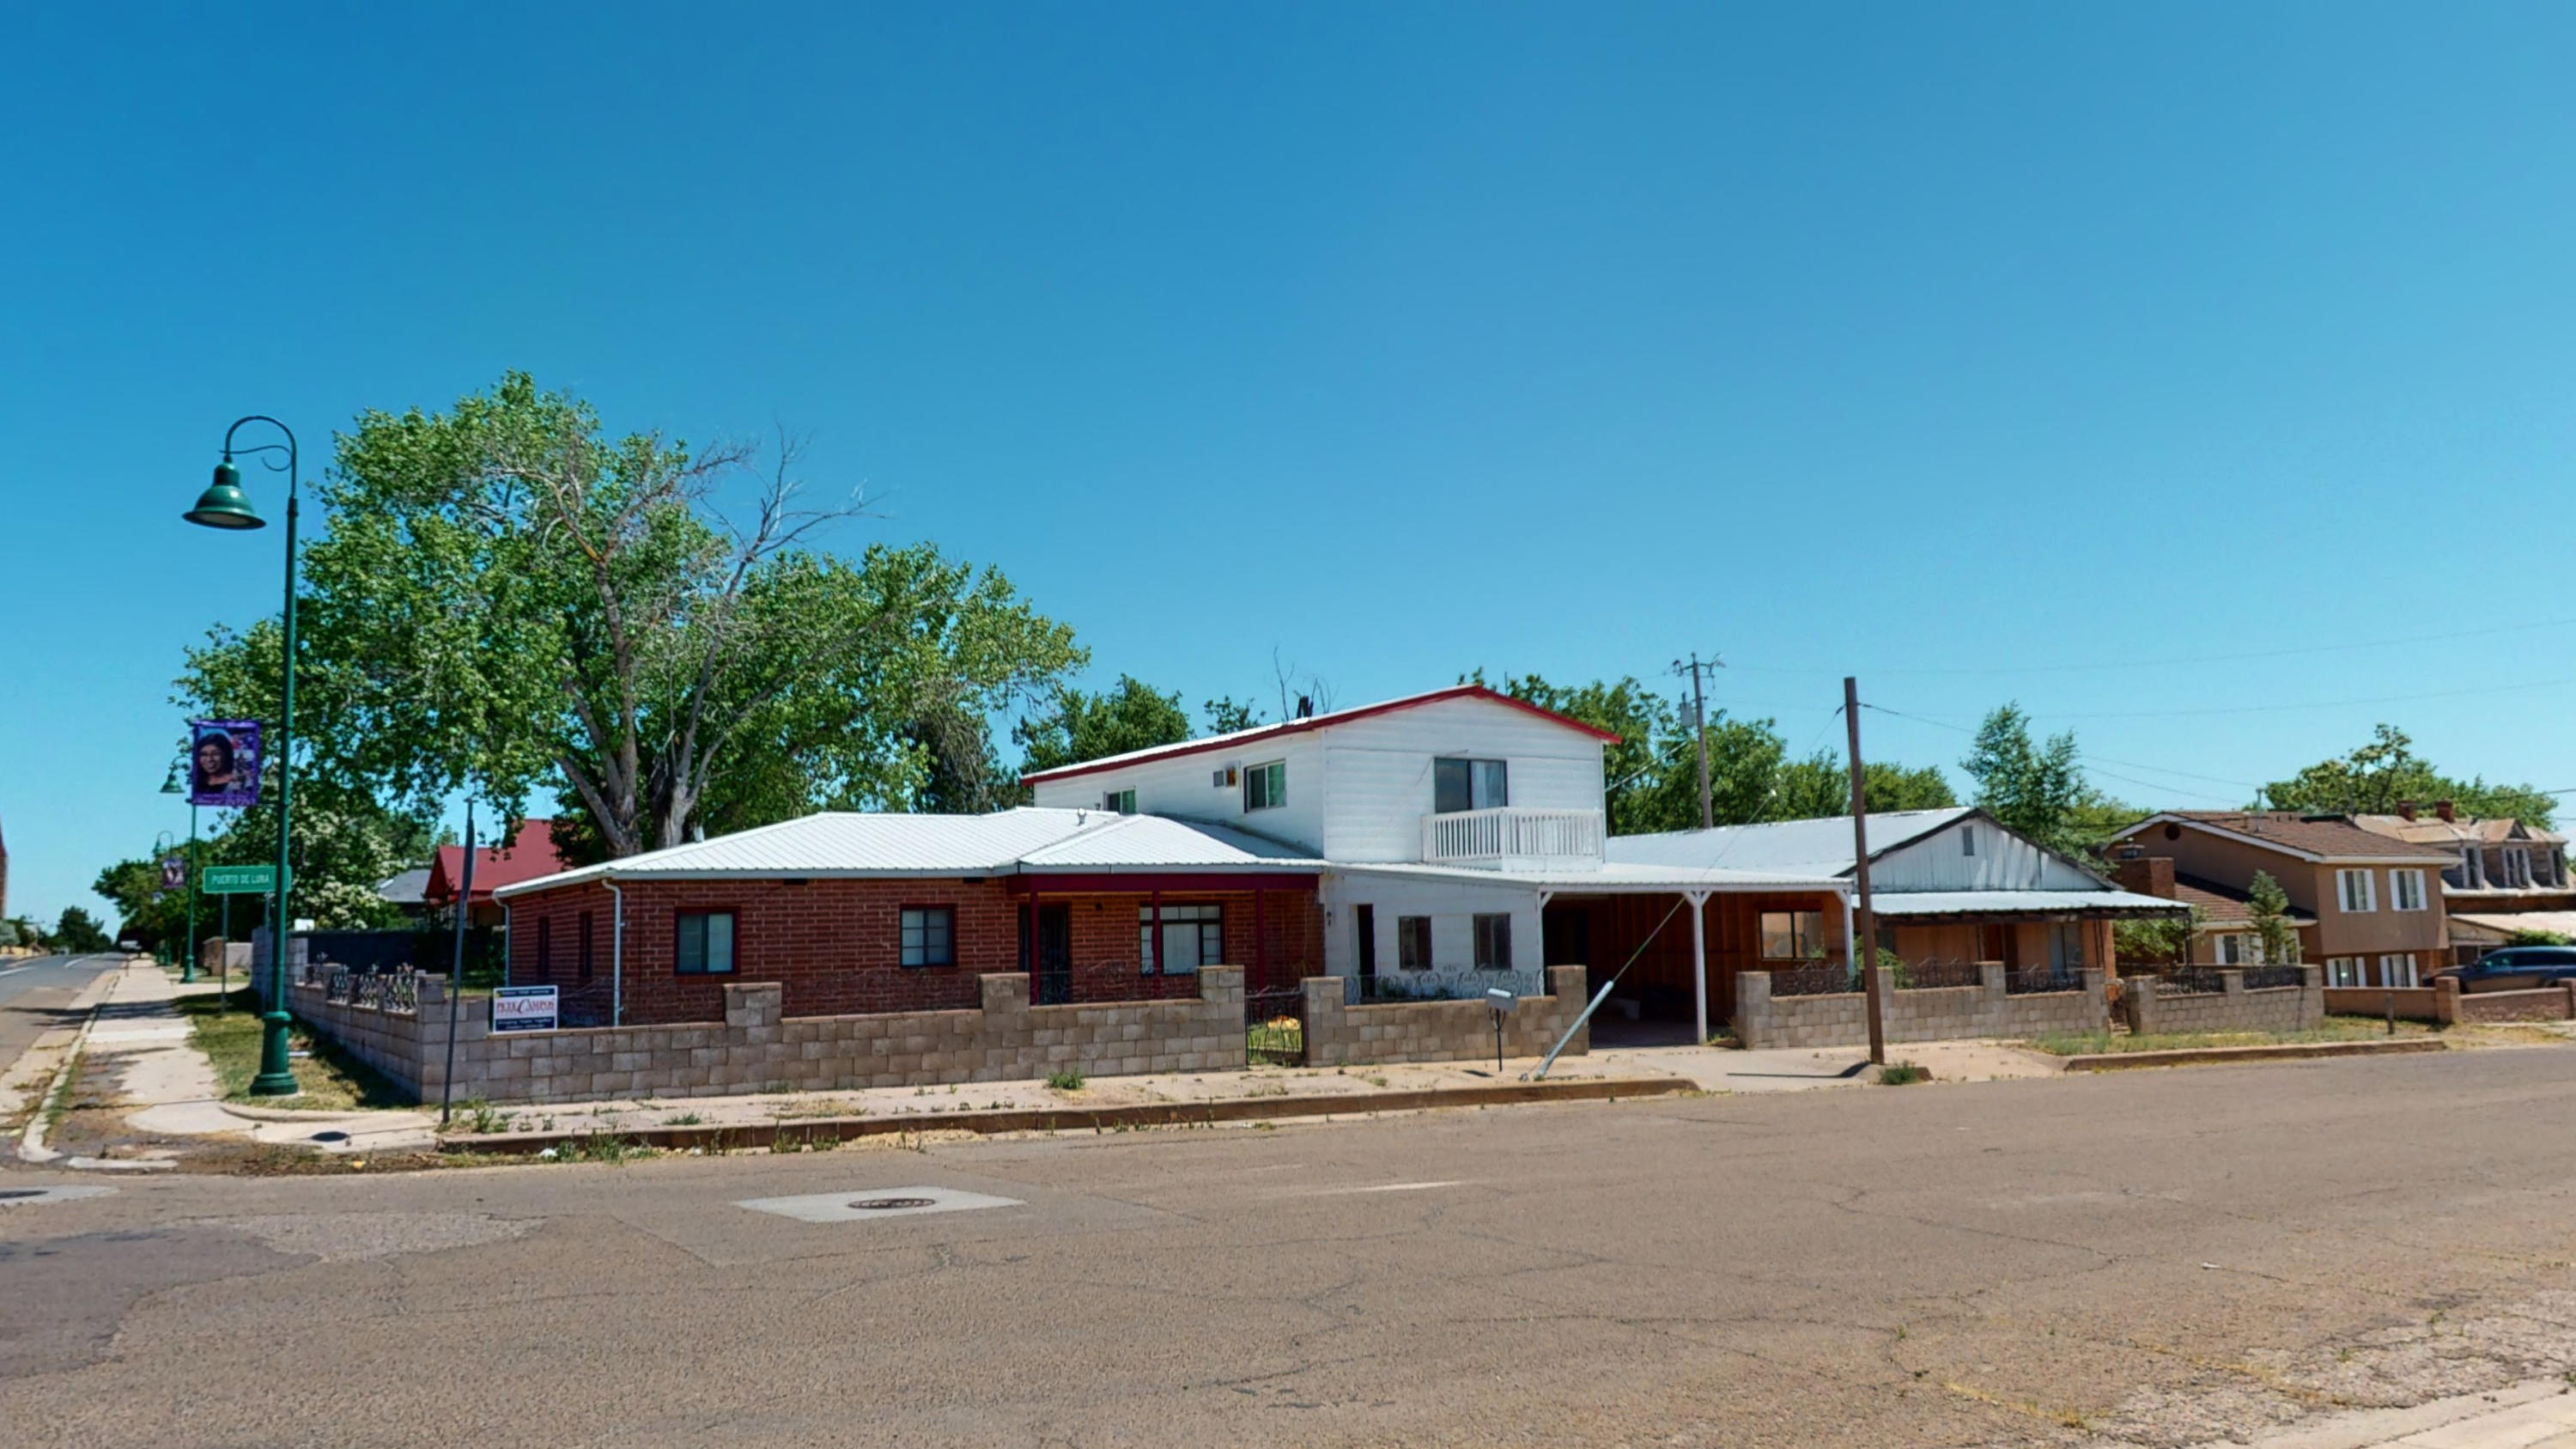 252 CORONA Avenue Property Photo - Santa Rosa, NM real estate listing